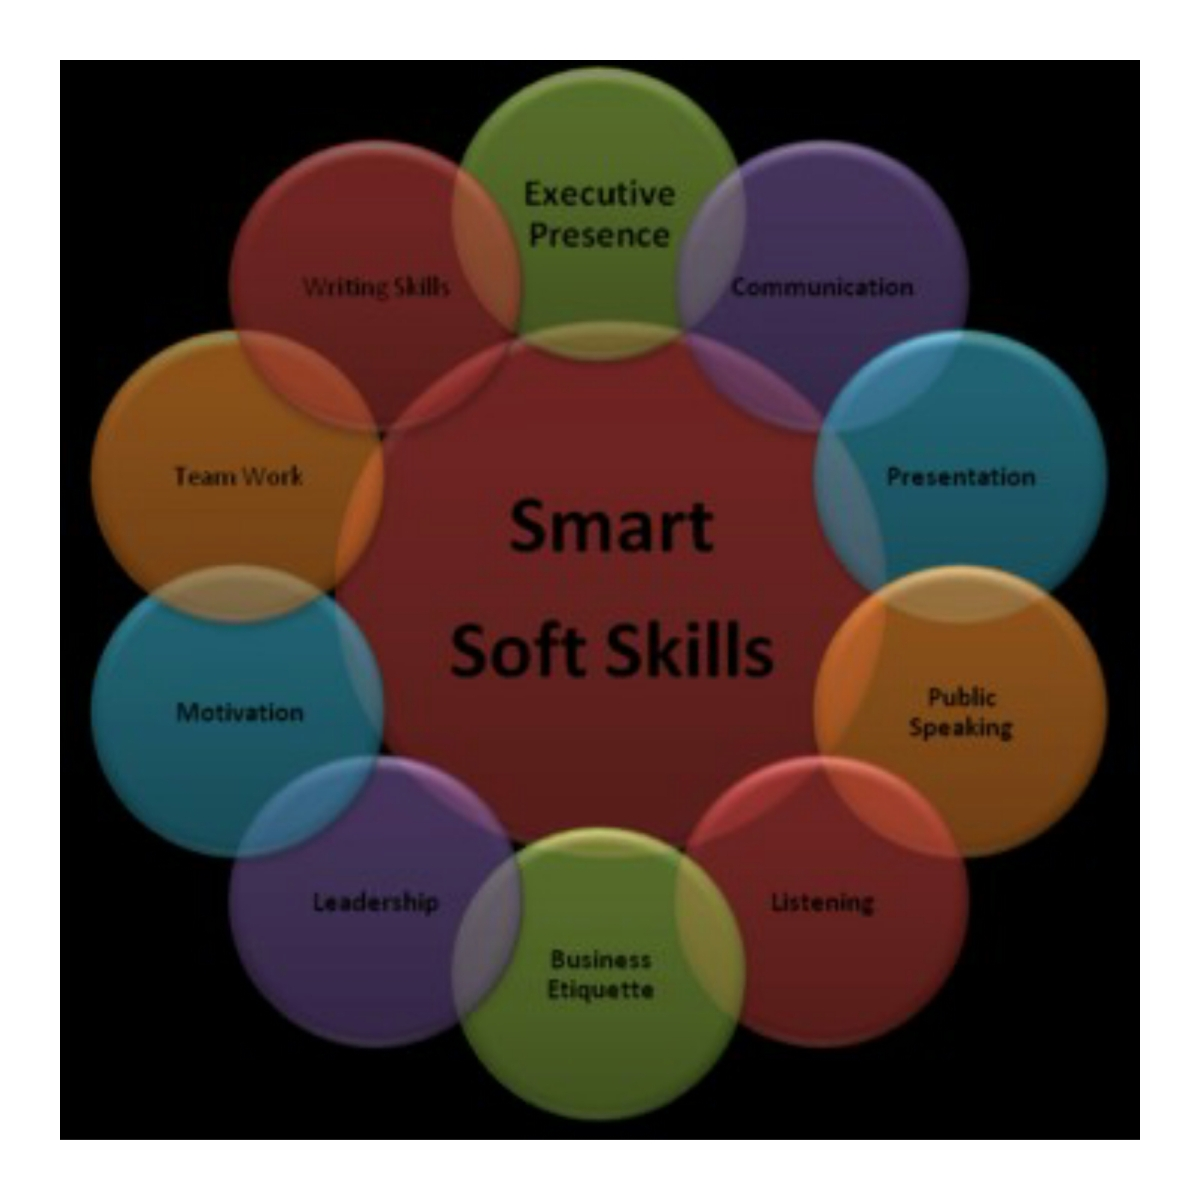 top ten soft skills attributes most important for business executives the london press